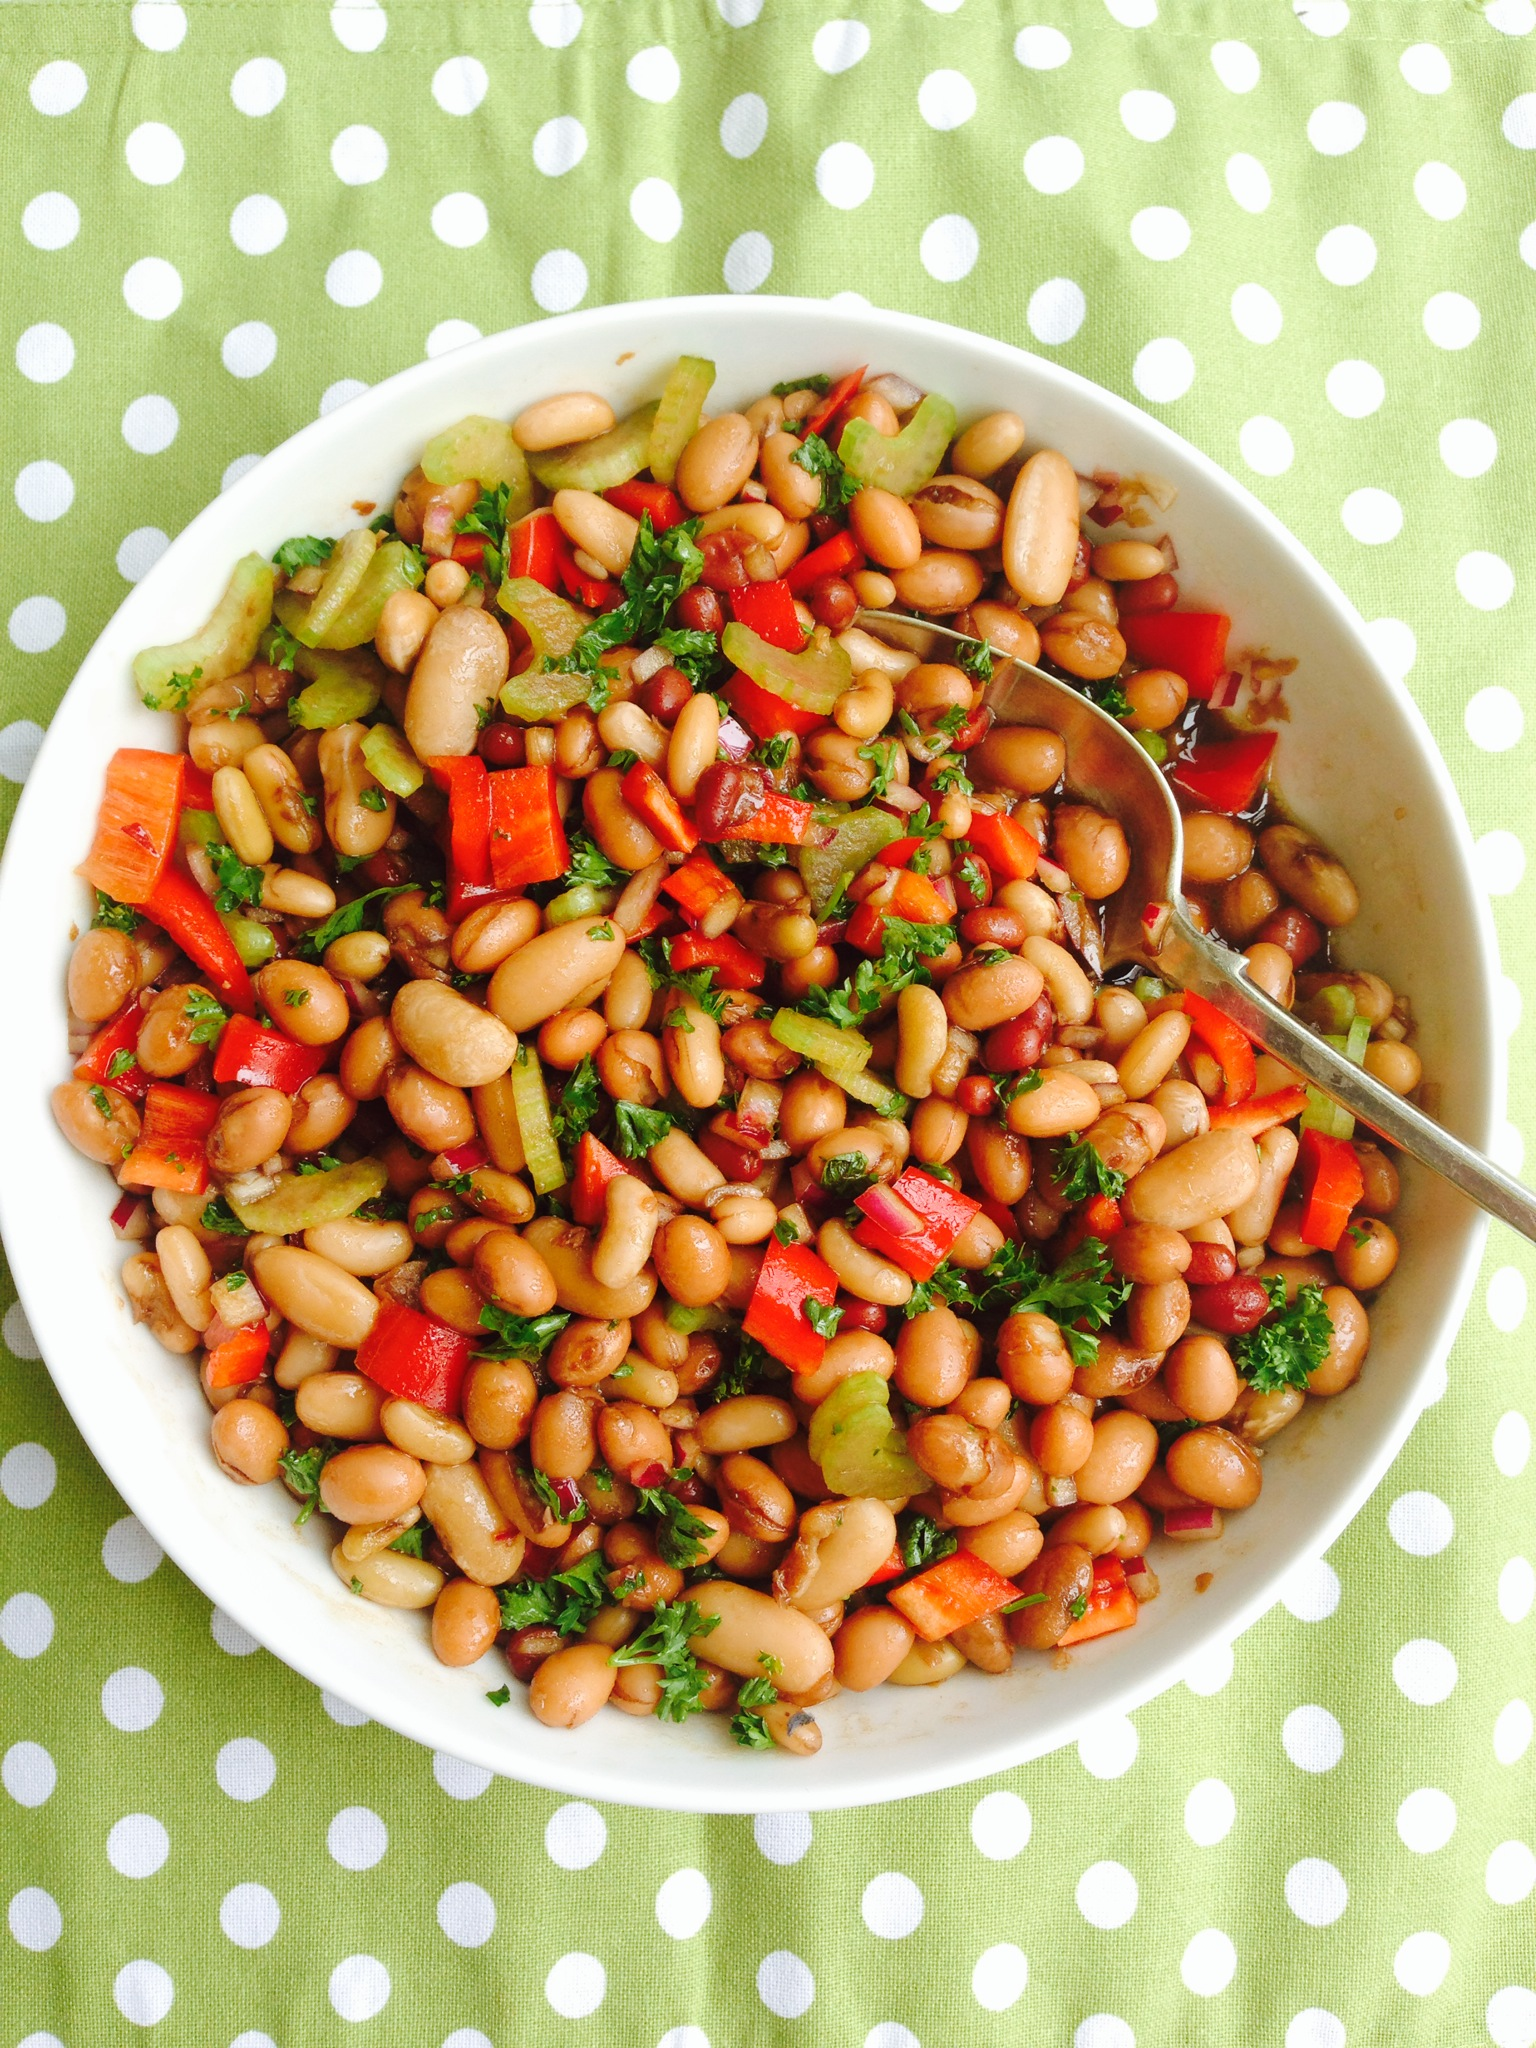 ... bean varieties you like in my opinion bean salads benefit from either